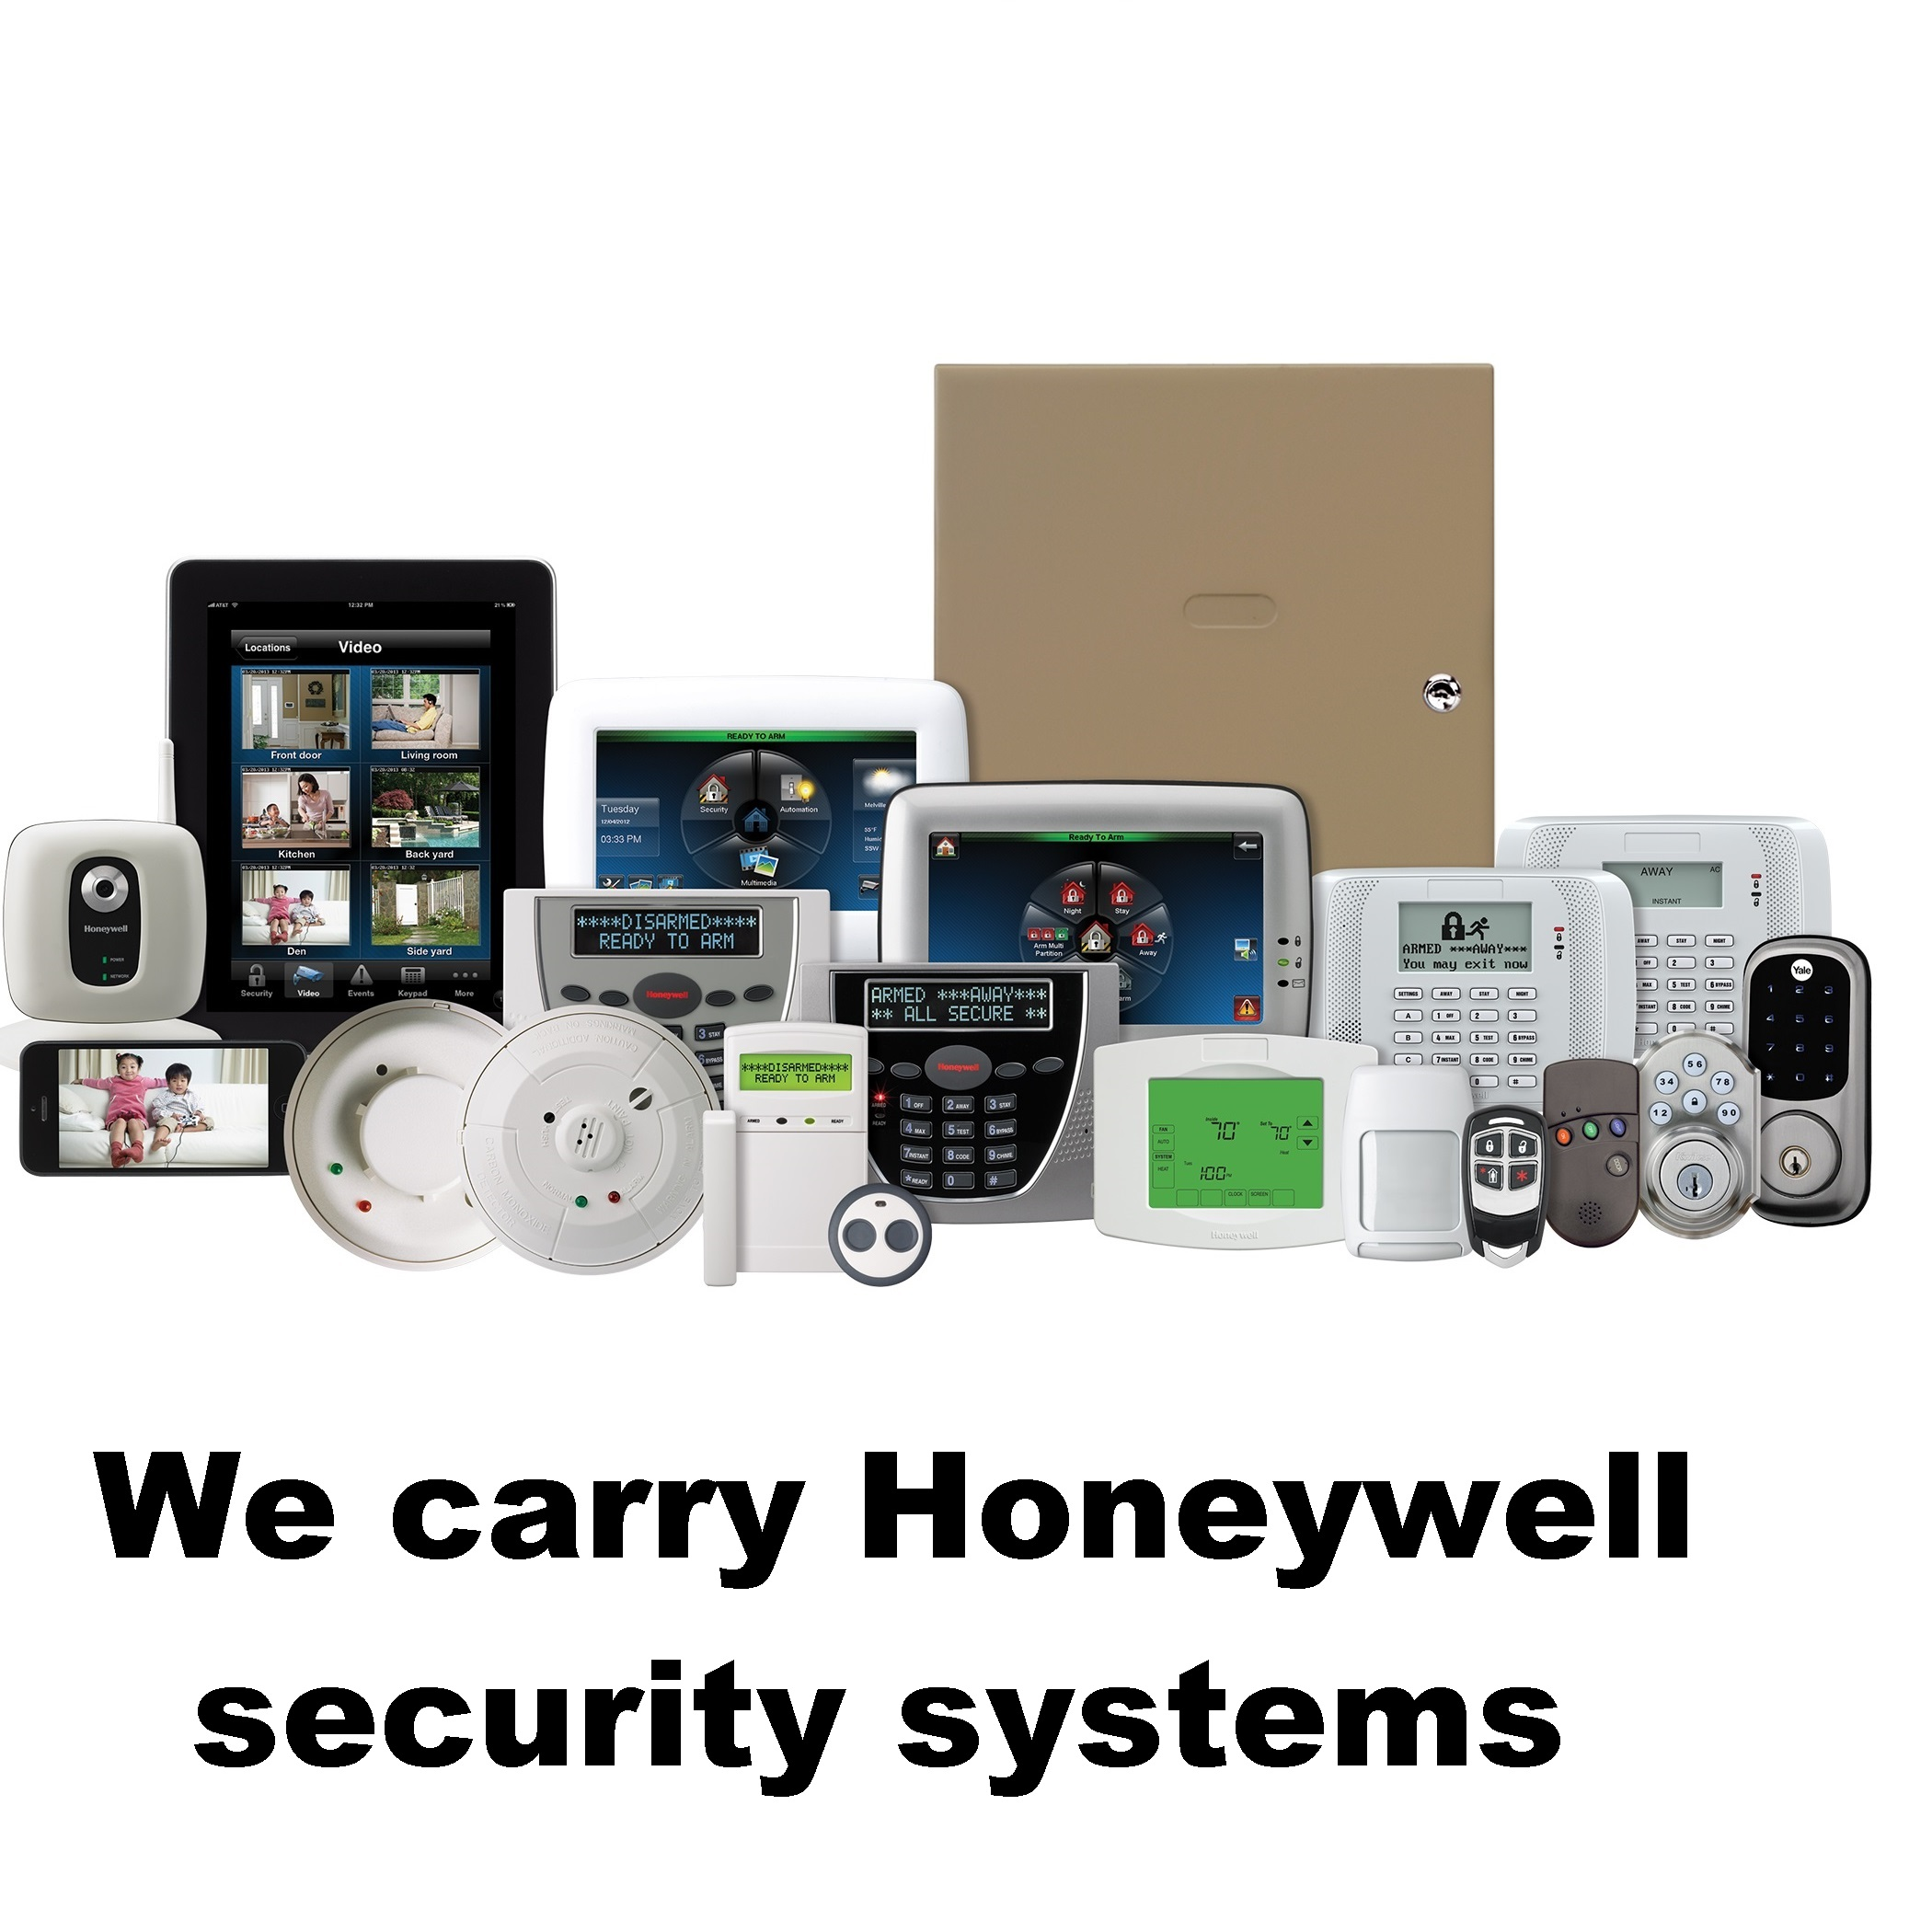 Honeywell Security Systems